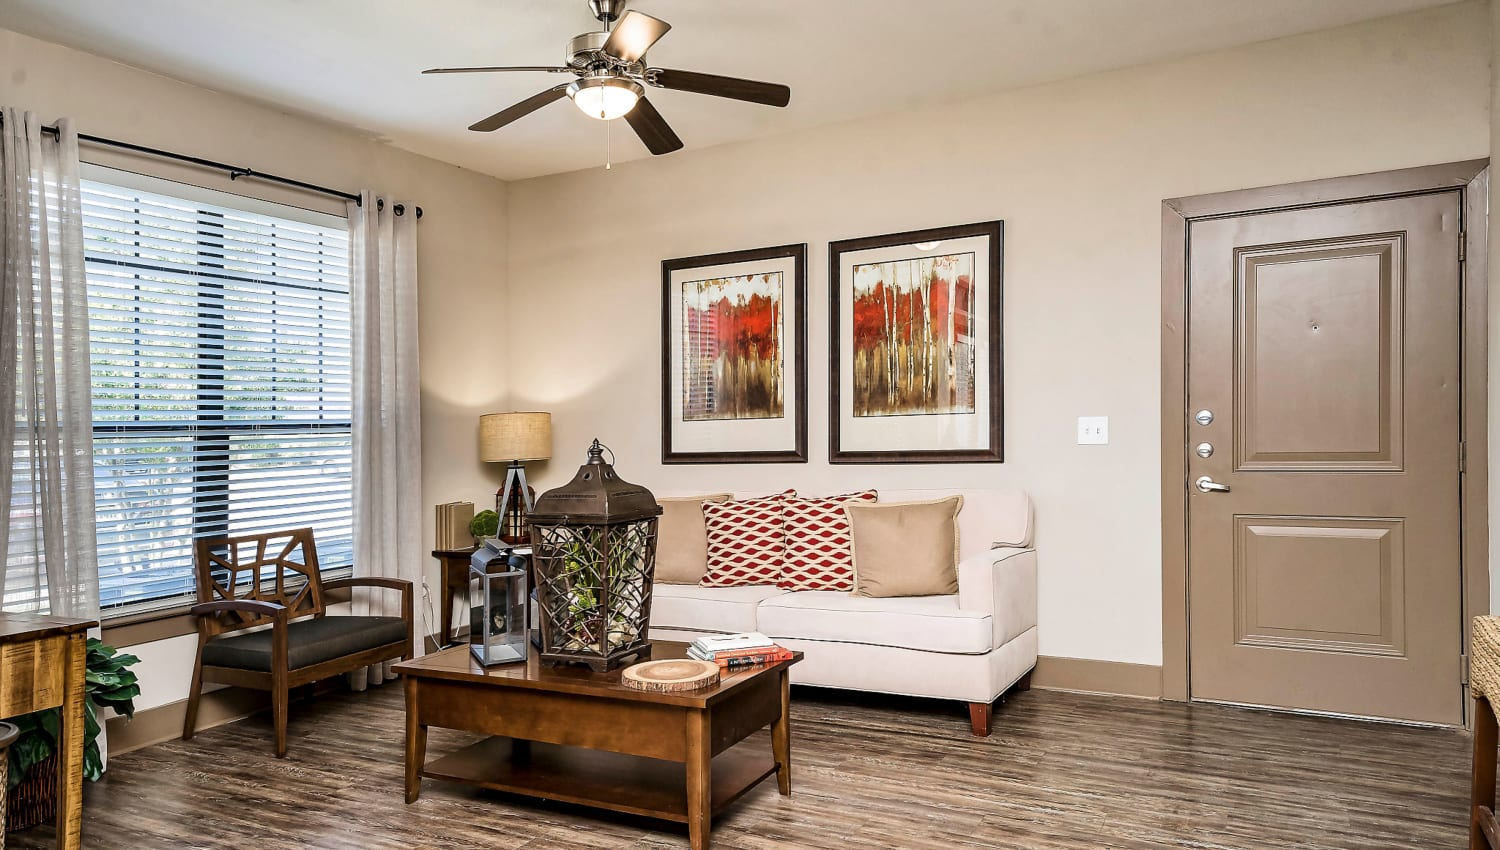 Ceiling fan and hardwood floors in a model home's living area at Sedona Ranch in Odessa, Texas